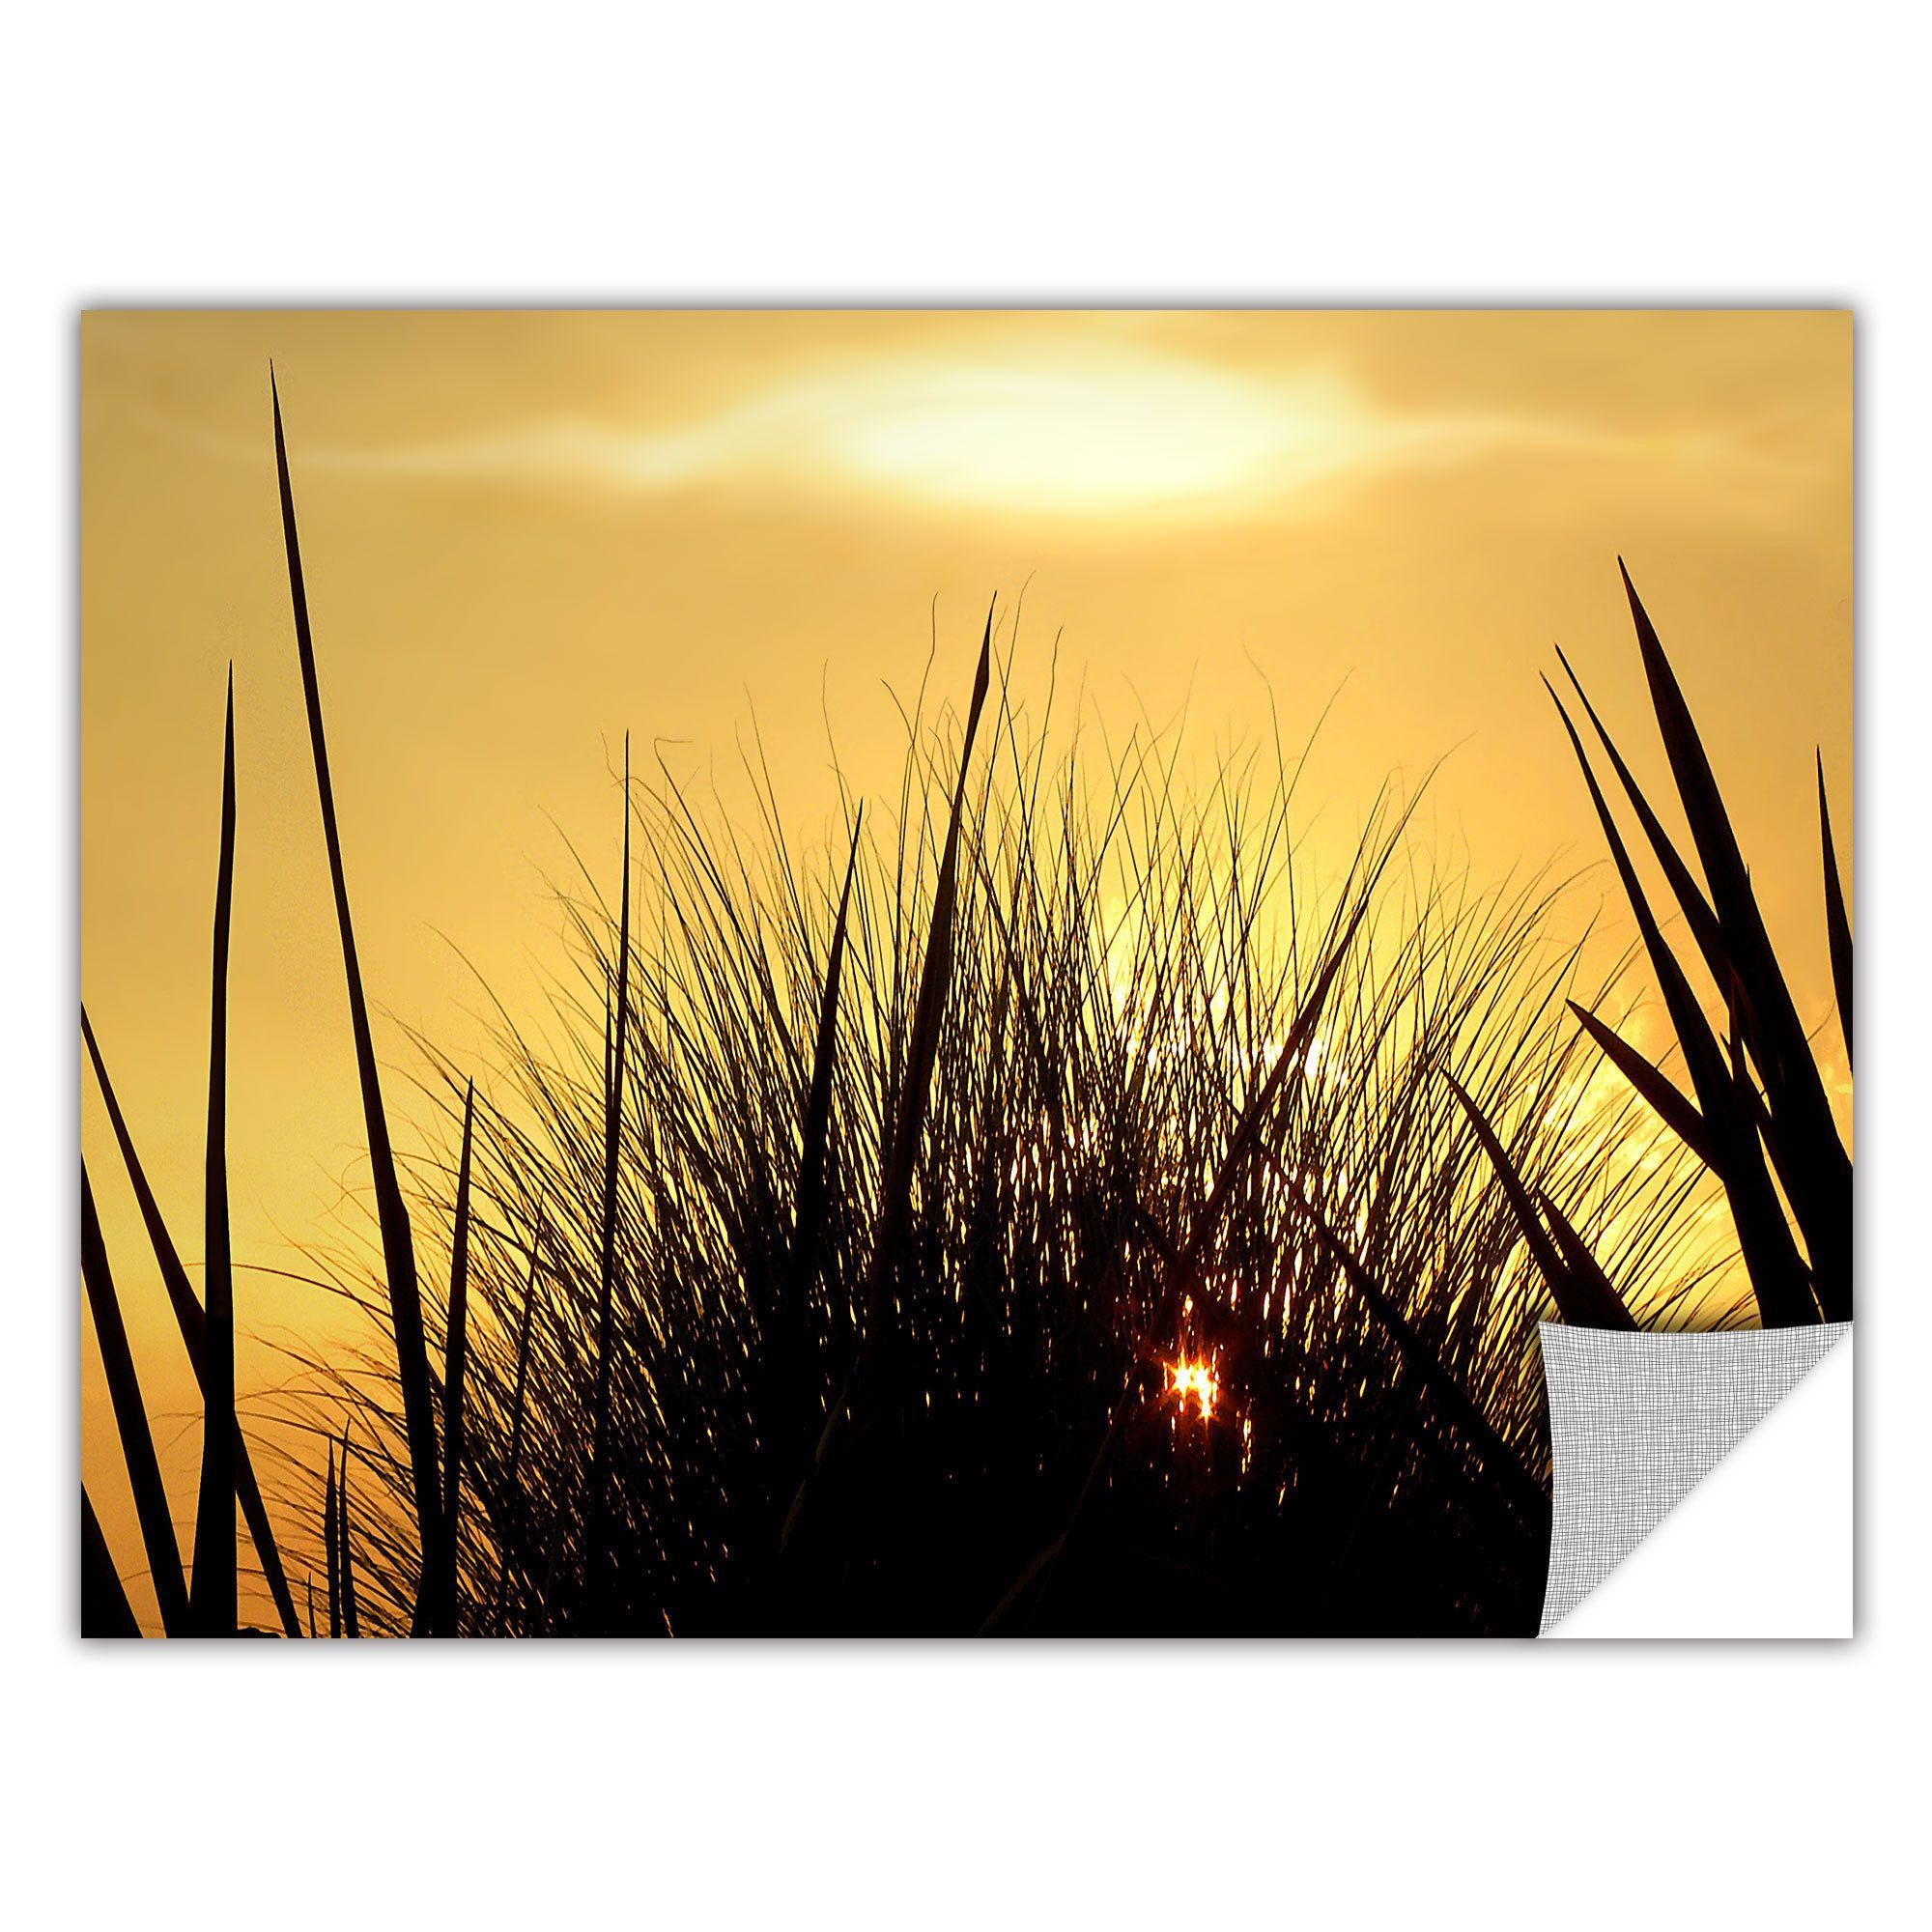 Removable wall art graphic - Artwall Dean Uhlinger Deep In July Art Appeelz Removable Wall Art Graphic